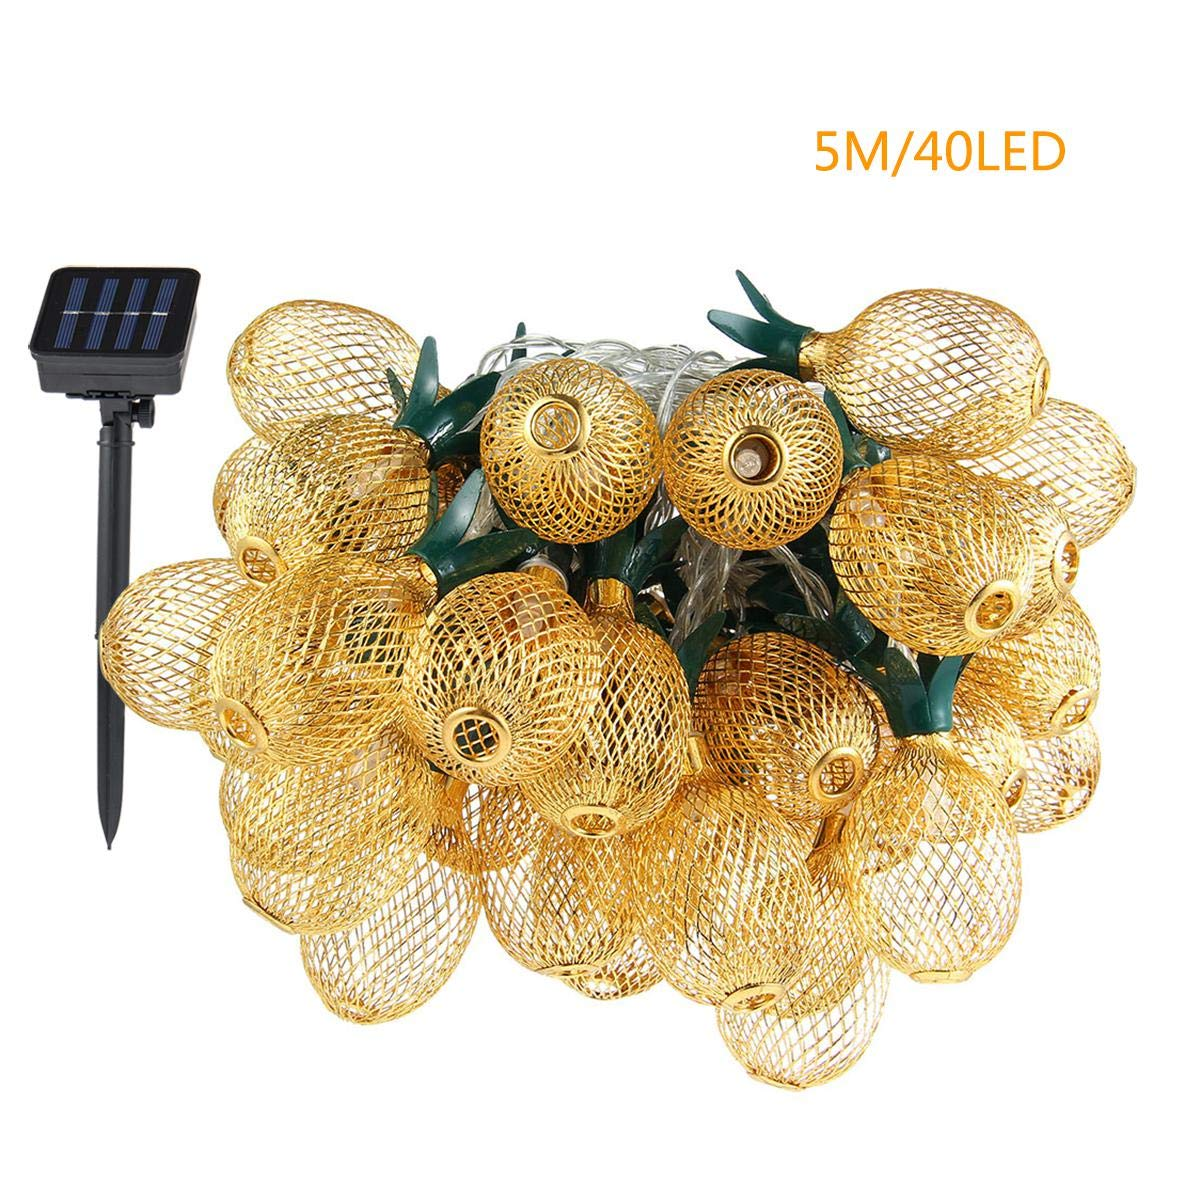 Pineapple String Lights, 200in/5m 40 LED Bulbs Waterproof Solar Charging Lantern String Lights with 2 Light Mode Fairy Lights for Wedding Garden Festival Party Halloween Christmas Indoor & Outdoor